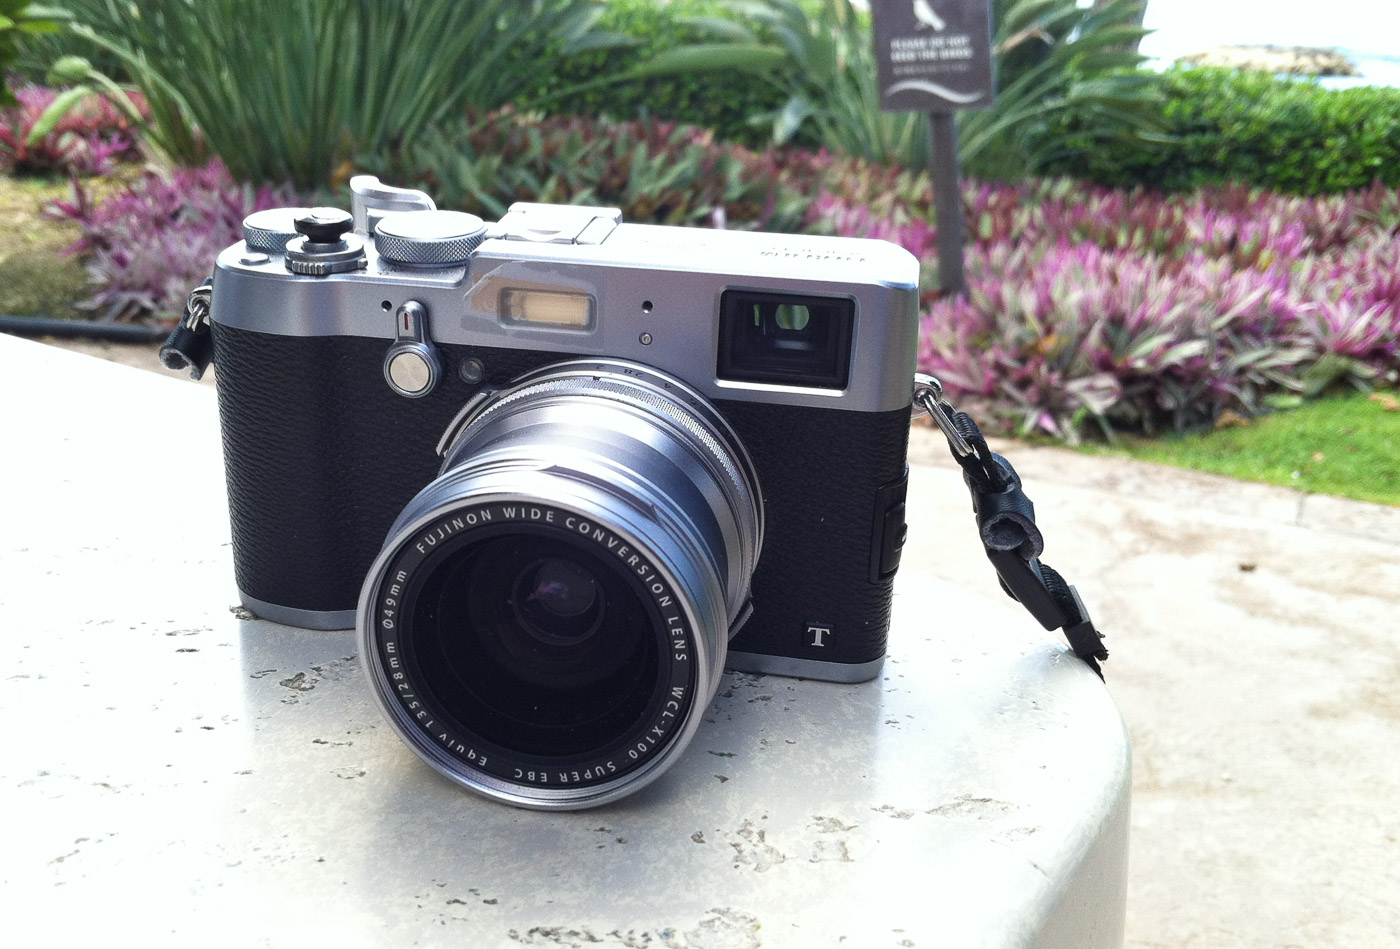 My Fuji X100T with the WCL-X100 Wide Conversion Lens mounted